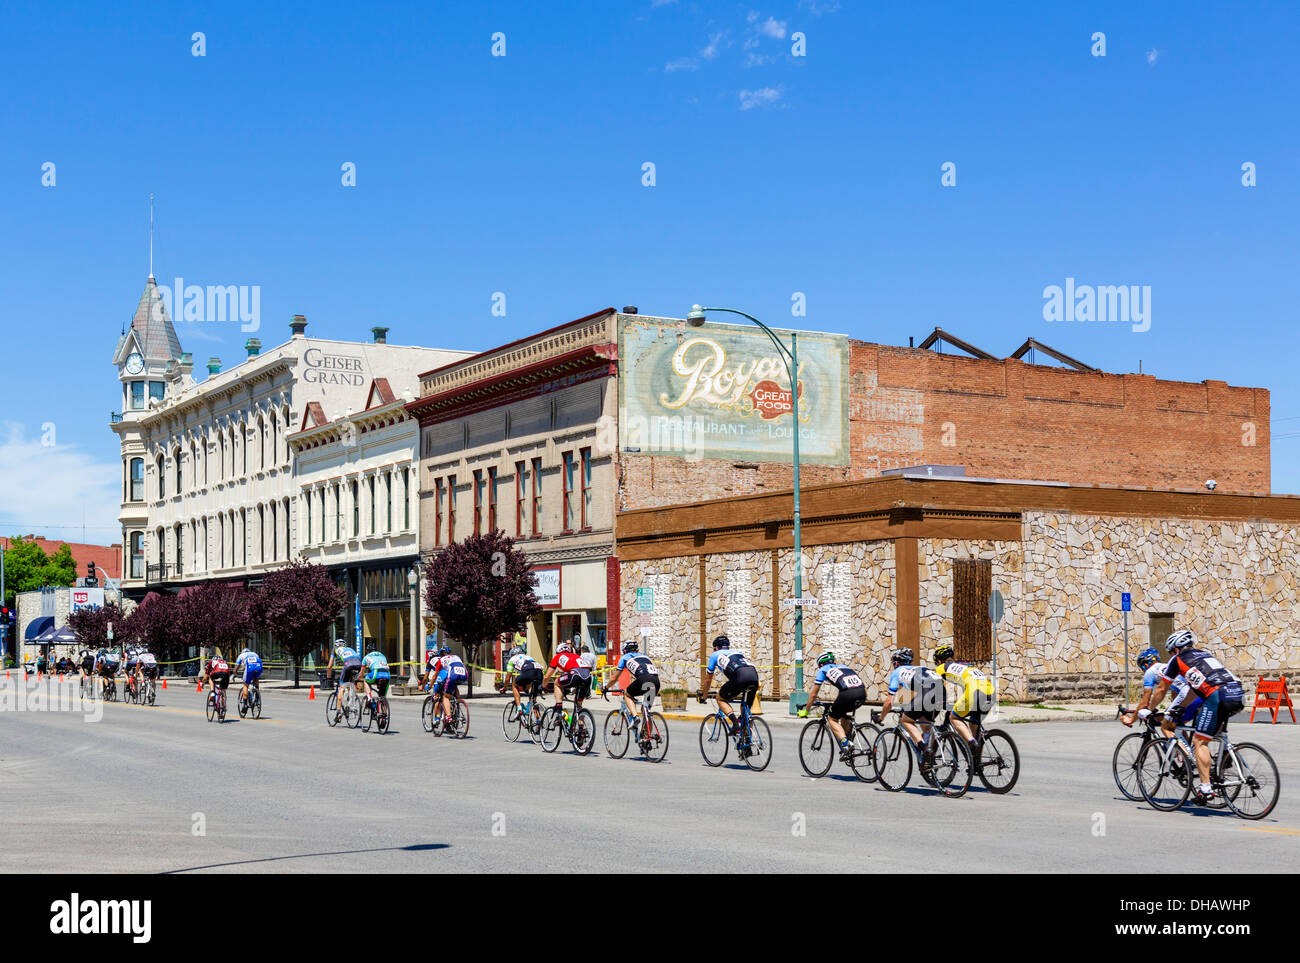 The 2013 Baker City Cycling Classic cycle race in front of the Geiser Grand Hotl, Main Street, Baker, Oregon, USA - Stock Image